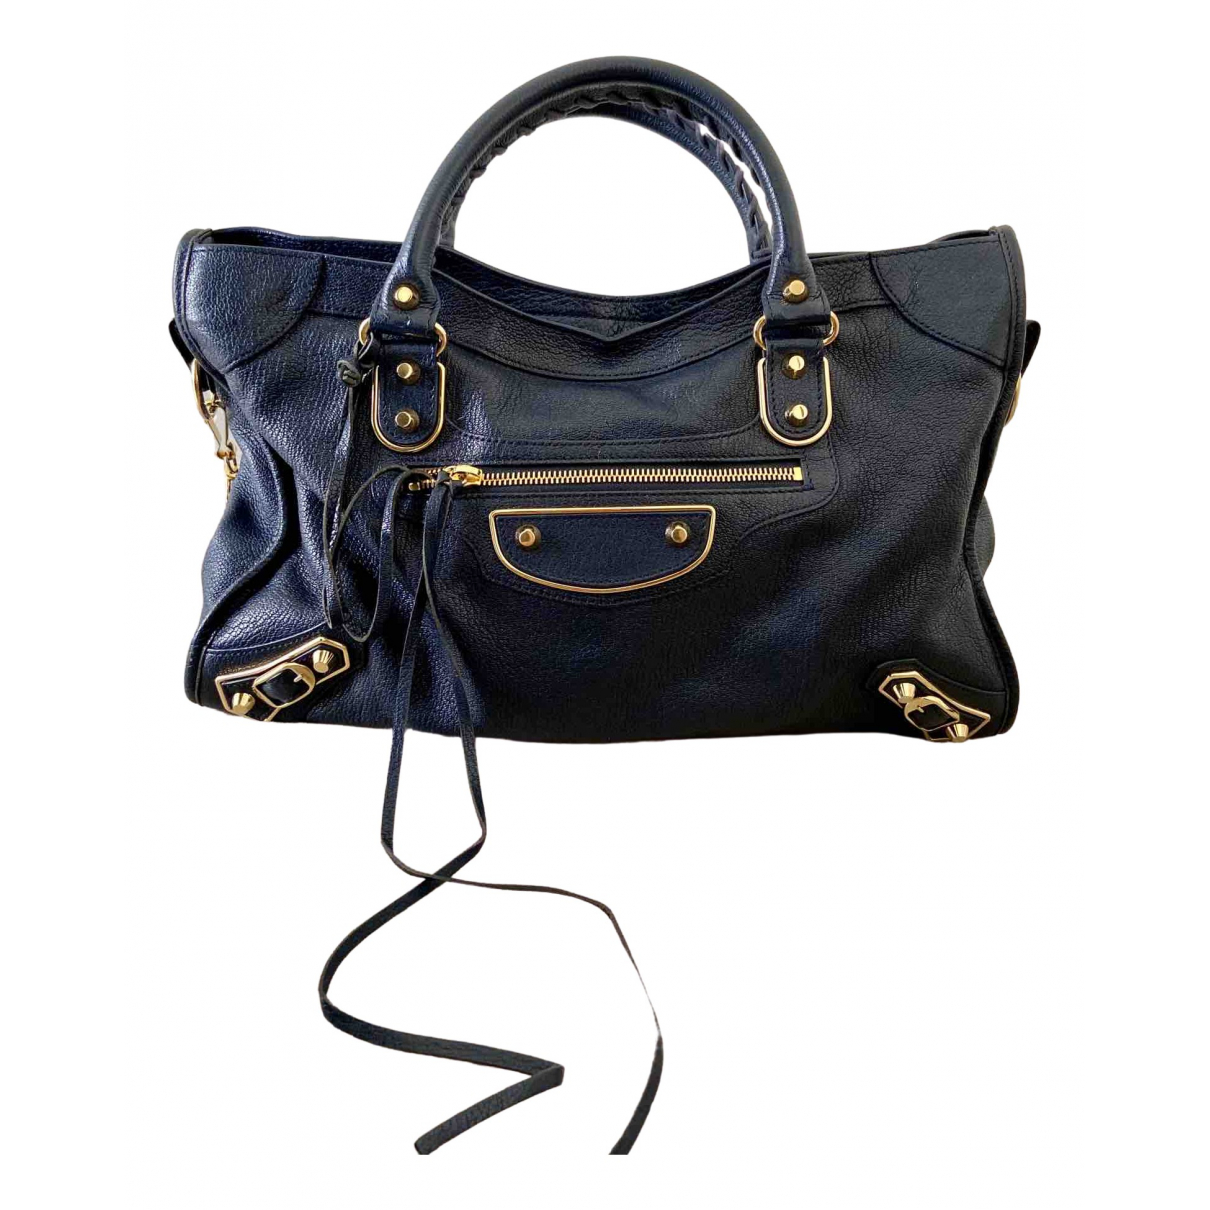 Balenciaga Classic Metalic Blue Leather handbag for Women \N